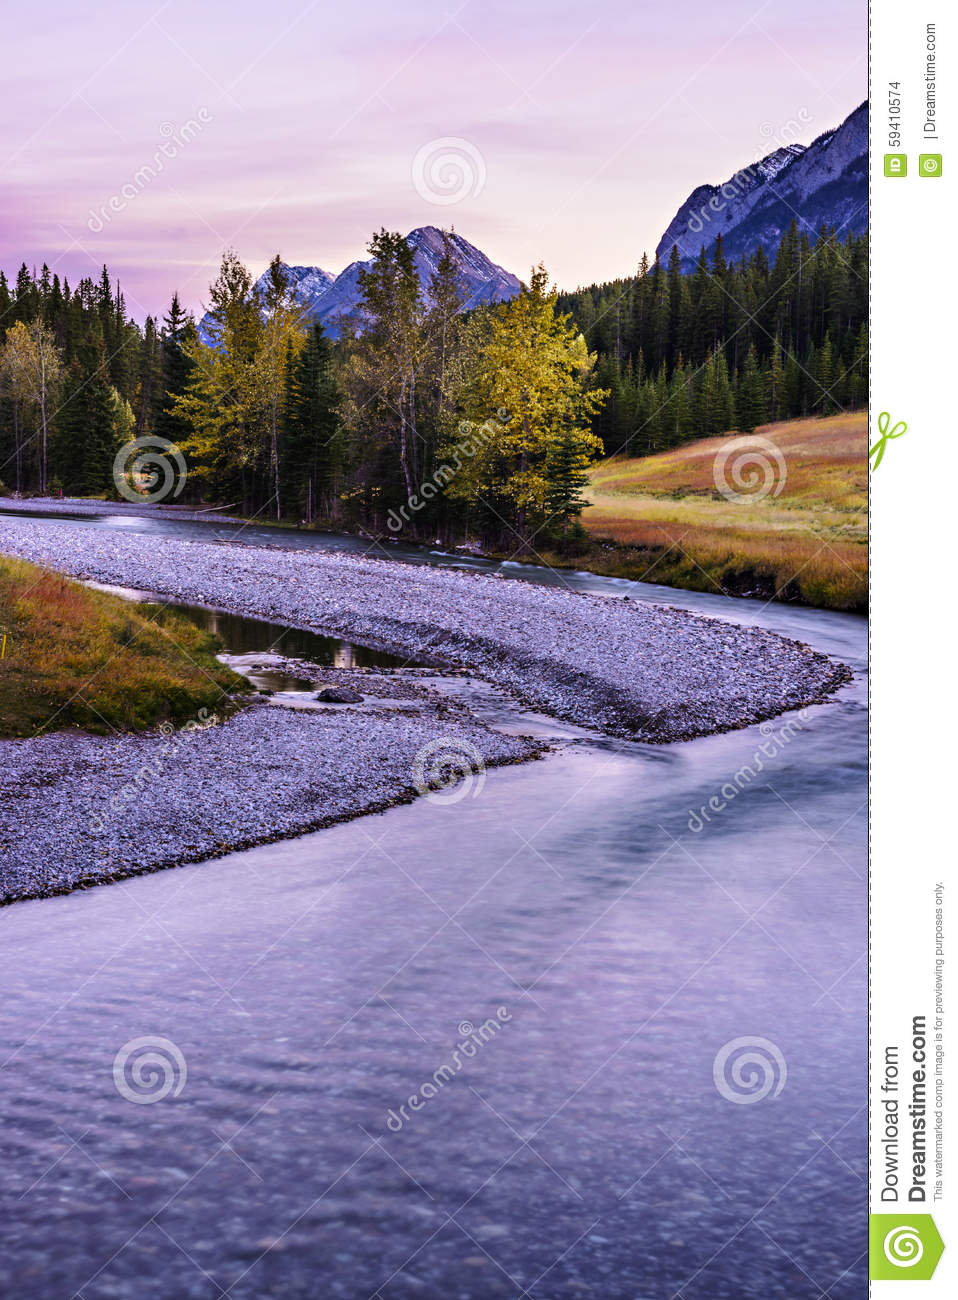 Paysage de ville de banff de canada photo stock image for Paysage de ville